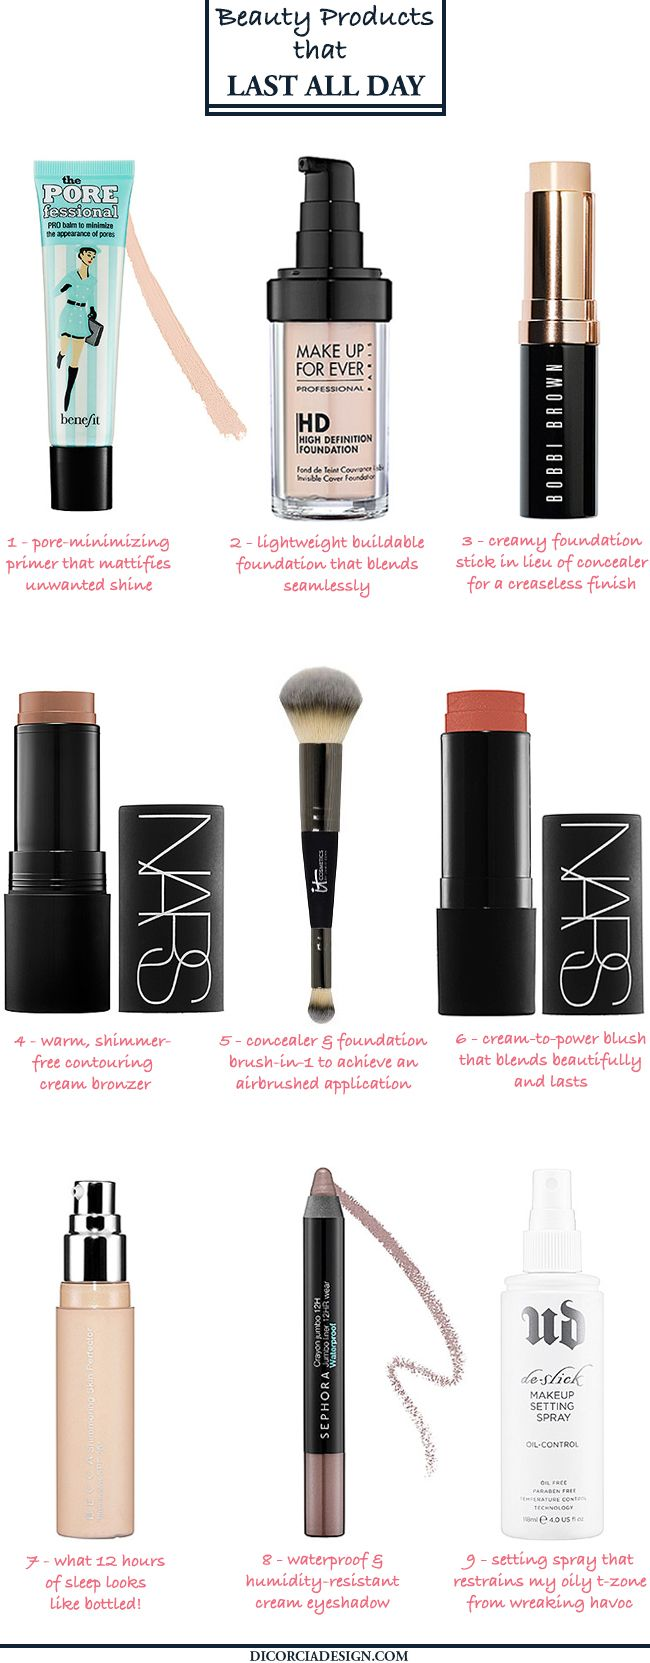 1.Benefit's The POREfessional2.Makeup Forever HD Invisible Cover Foundation3.Bobbi Brown's Skin Foundation Stick4.Nars Matte Multiple in Alta5. It Cosmetics Airbrush Foundation/Concealer br...